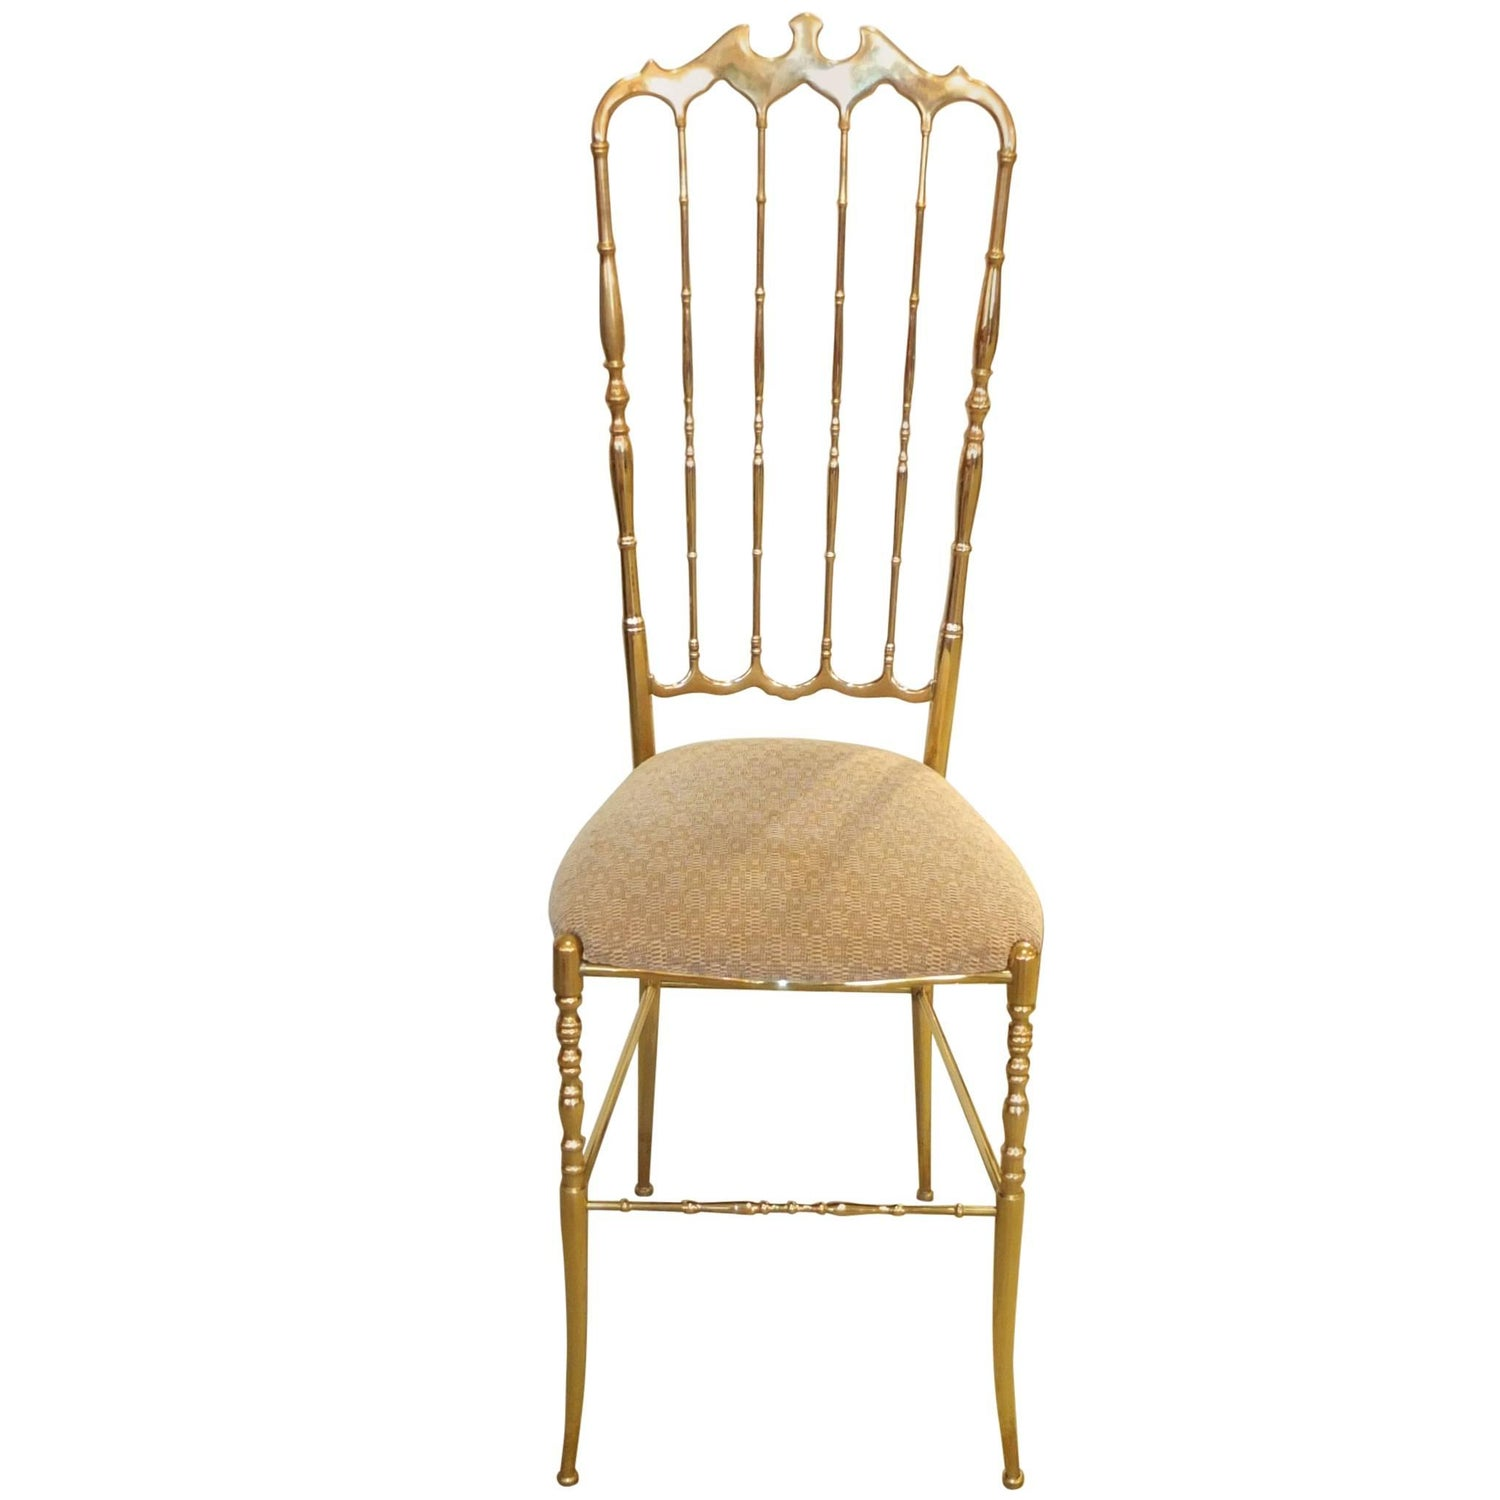 Solid Brass High Back Chiavari Chair For Sale at 1stdibs